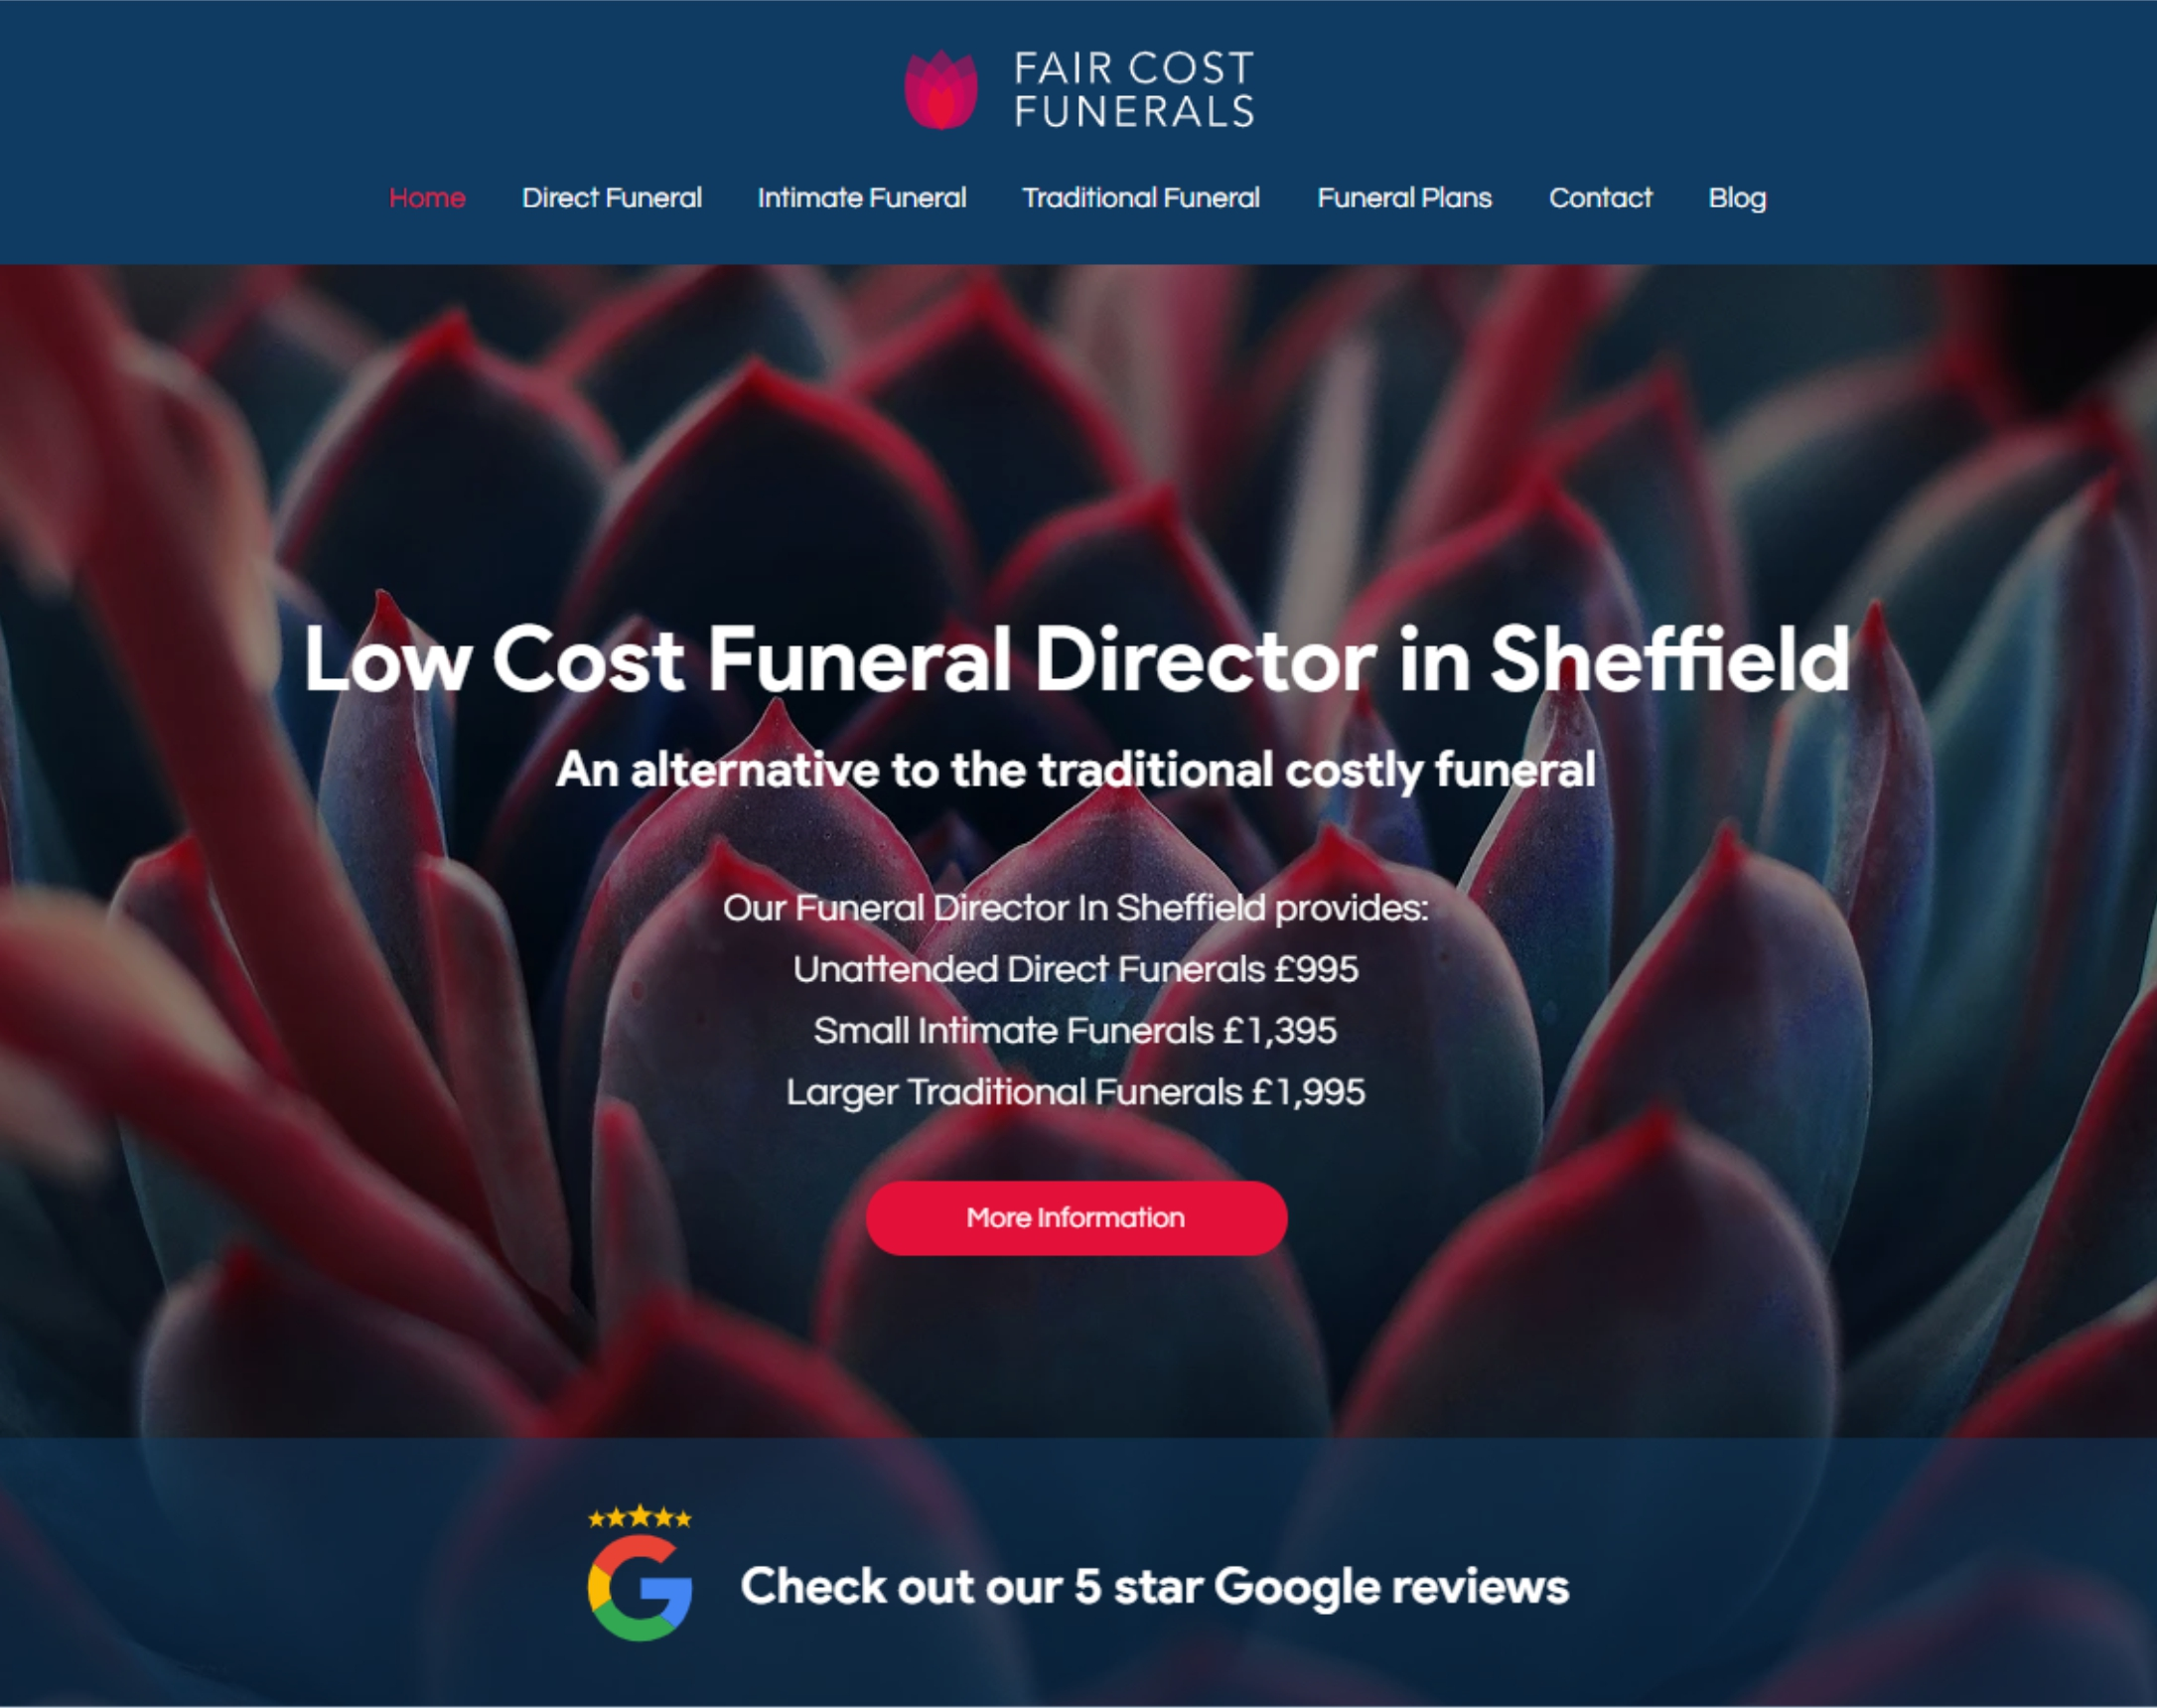 Fair Cost Funerals Fair Cost Funerals is a Sheffield based funeral di...